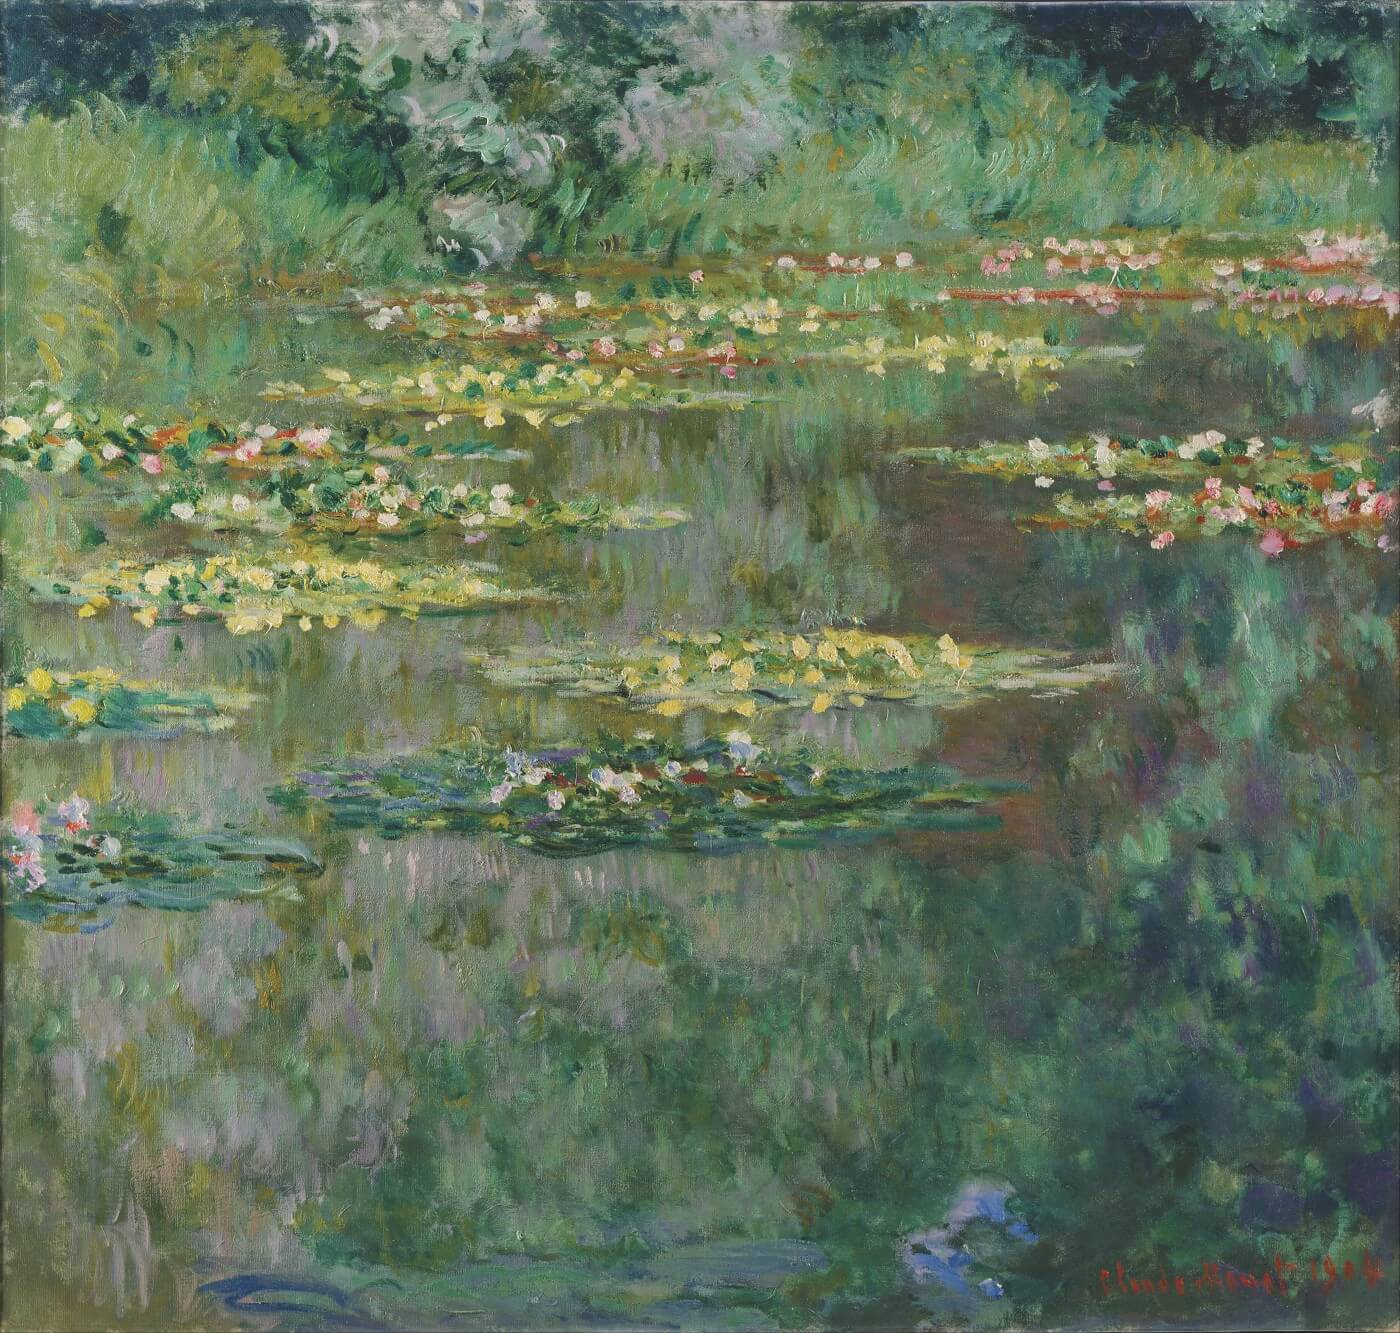 Claude Monet Paintings | Buy Posters, Frames, Canvas, Digital Art & Large Size Prints Of The Famous Old Master's Artworks